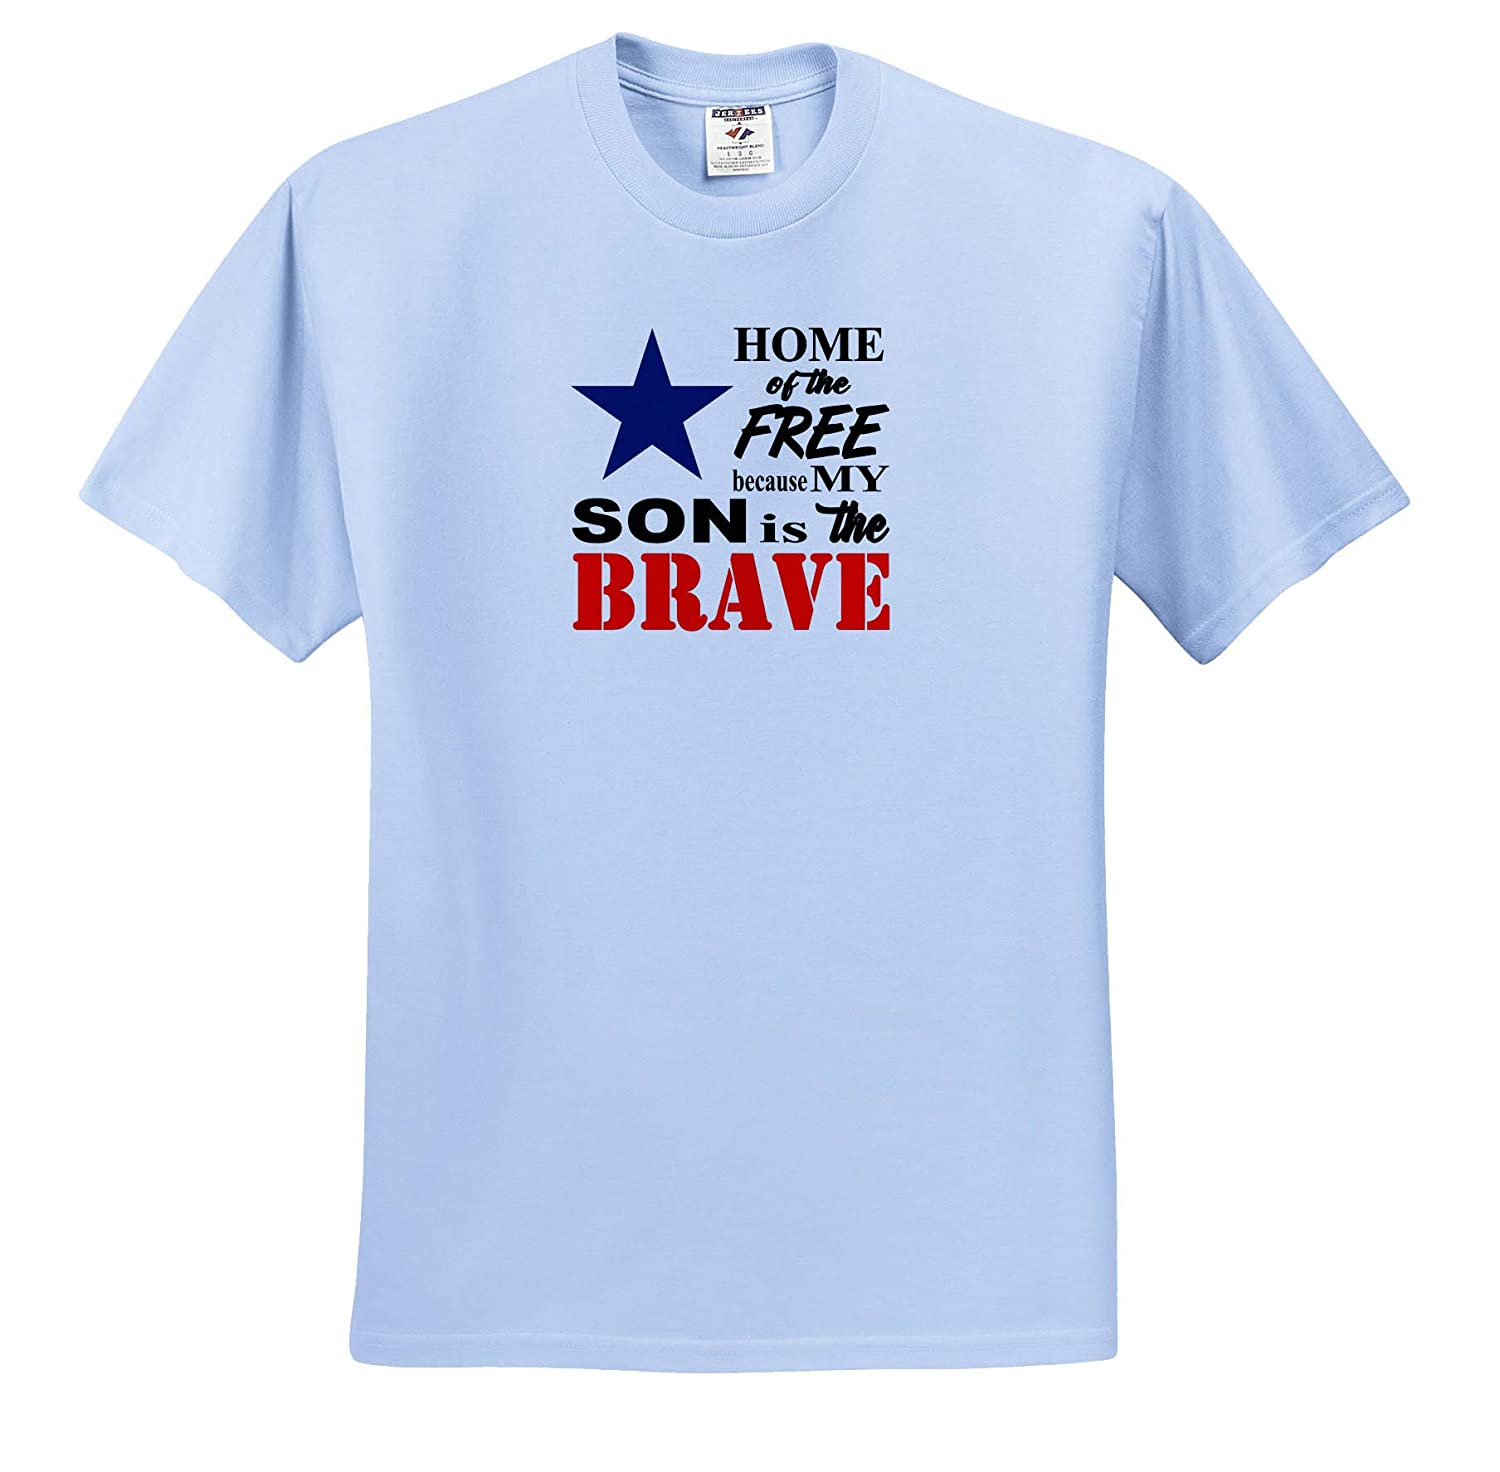 Home of The Free Because My Son is The Brave Quote Adult T-Shirt XL 3dRose Amanda Levermann ts/_319910 Quotes